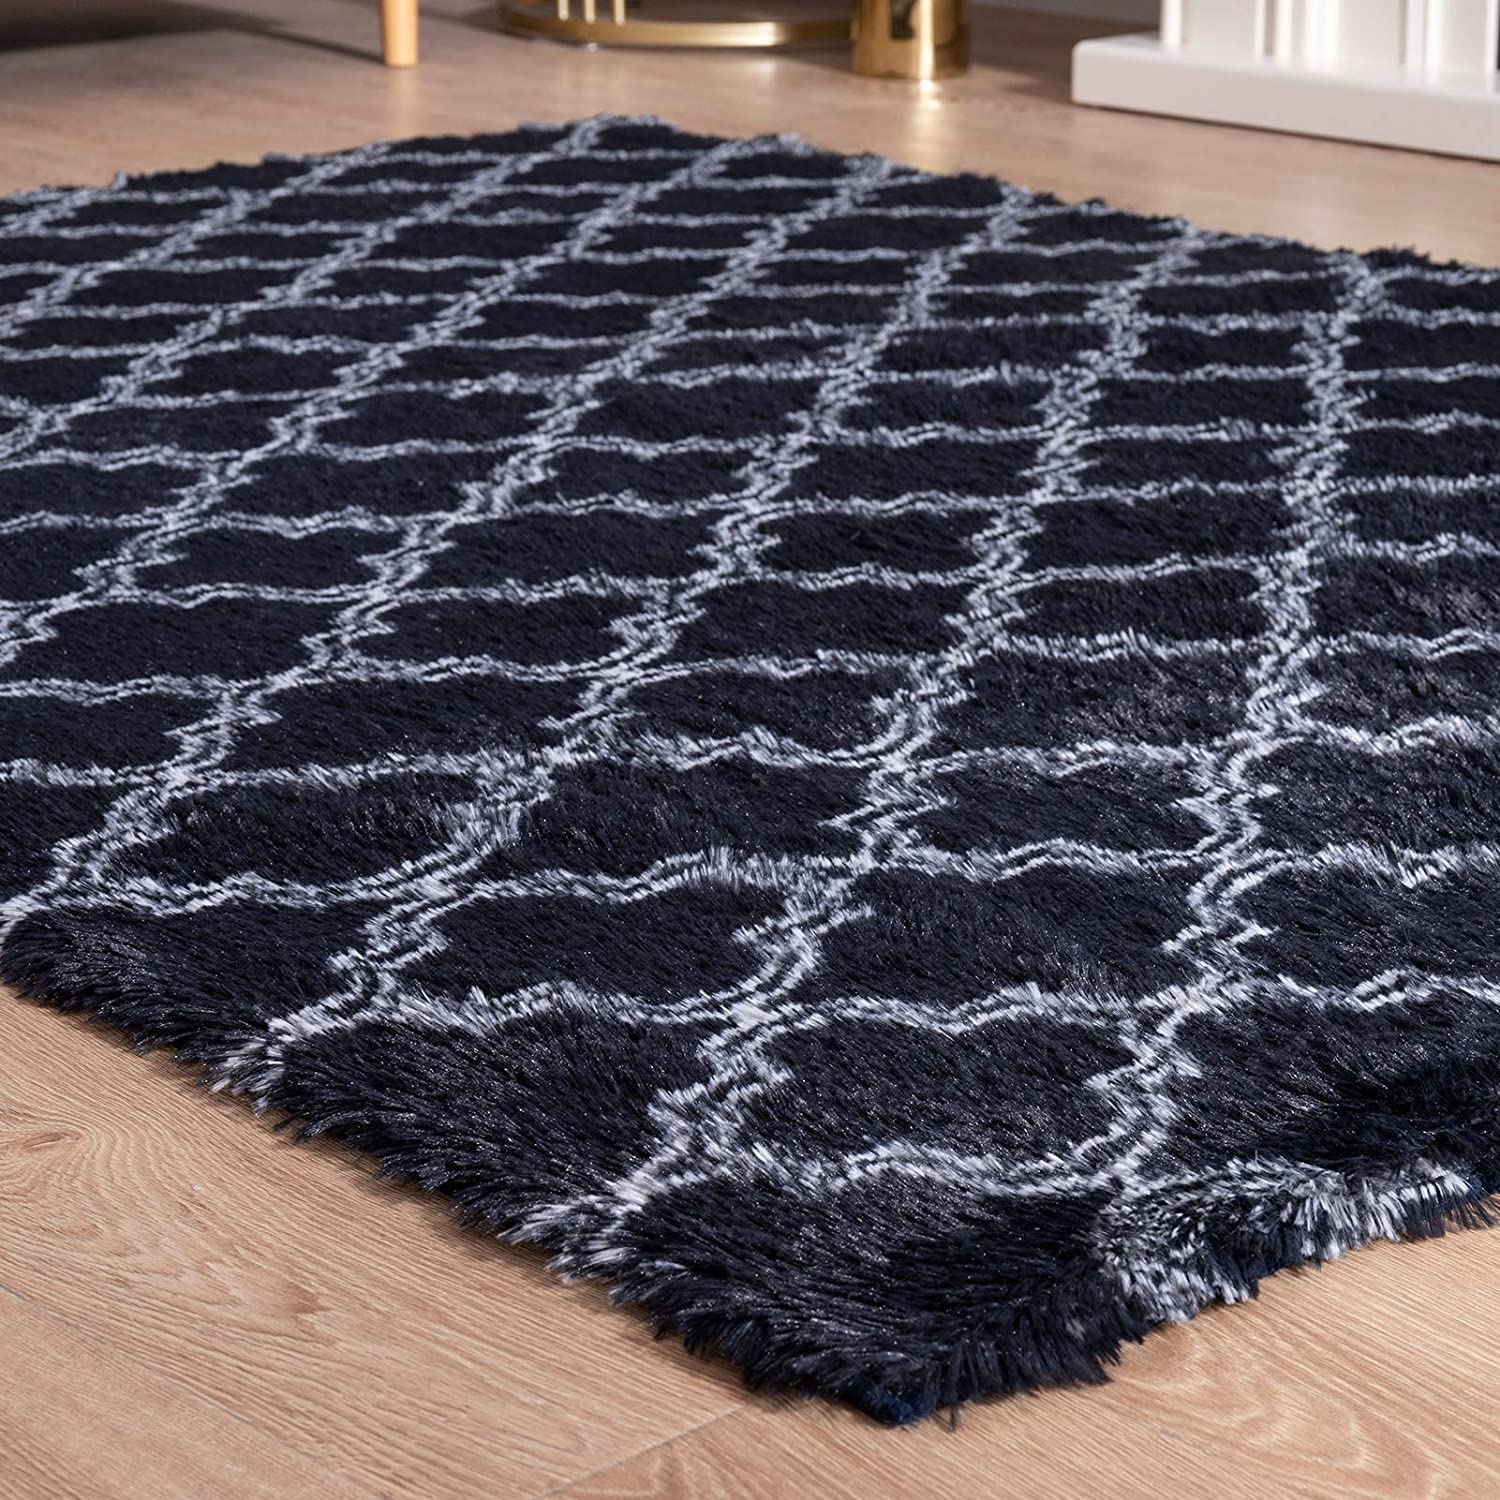 Carvapet Super Soft Moroccan Dallas Mall Area Rugs S Living Max 88% OFF for Room Bedroom